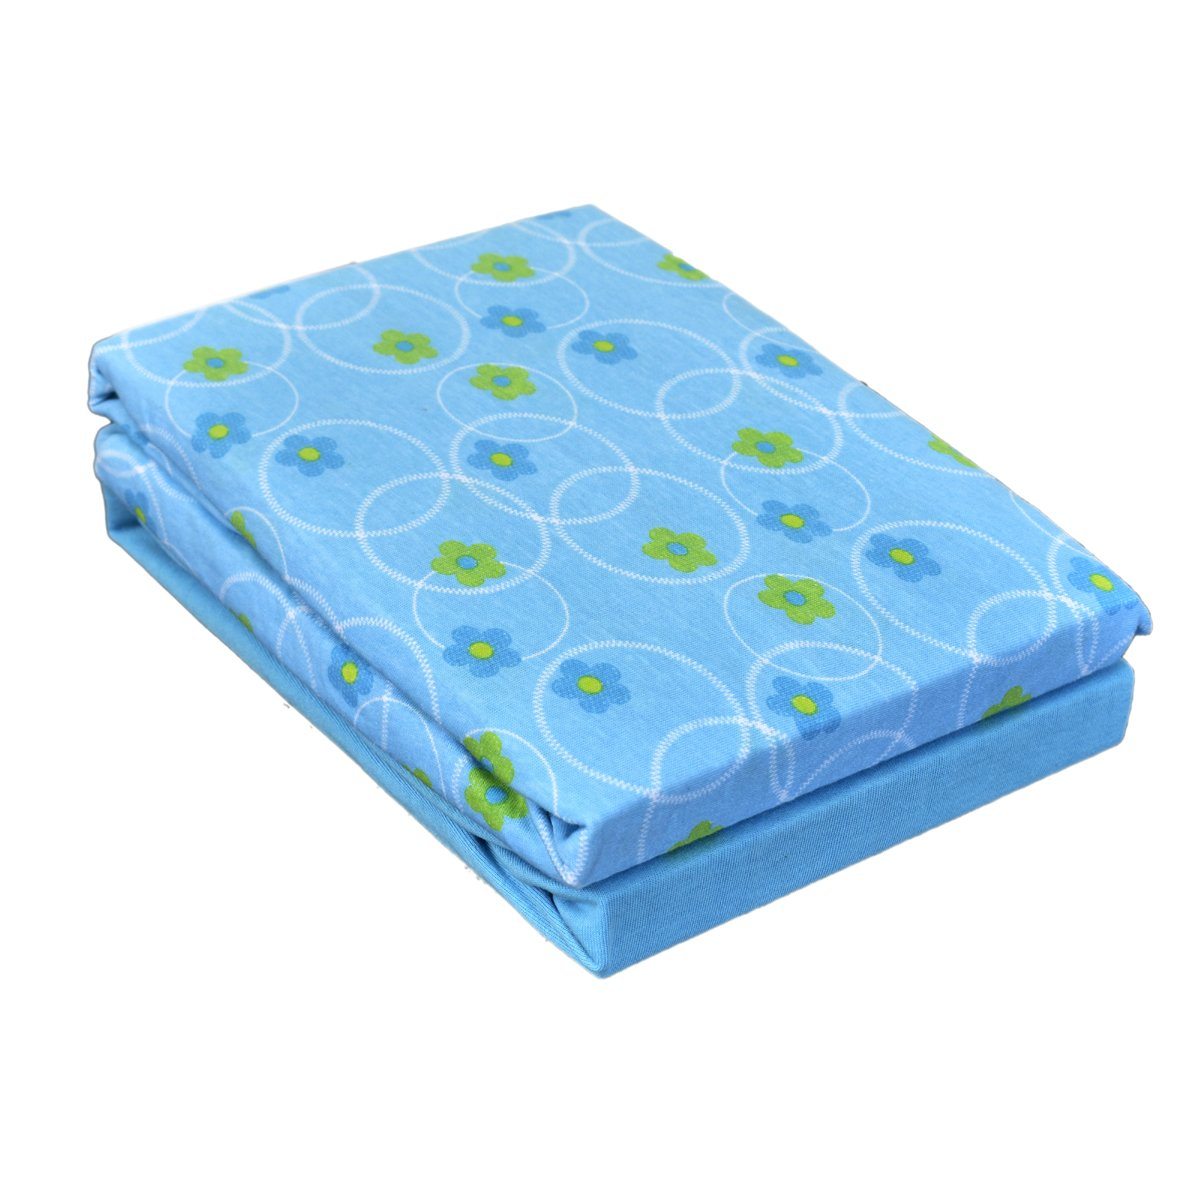 Dudu N Girlie Cotton Cot Bed Fitted Sheets, 70 x 140 cm, Abstract Blue, 2-Piece Dudu N Girlie Limited 5000424211711